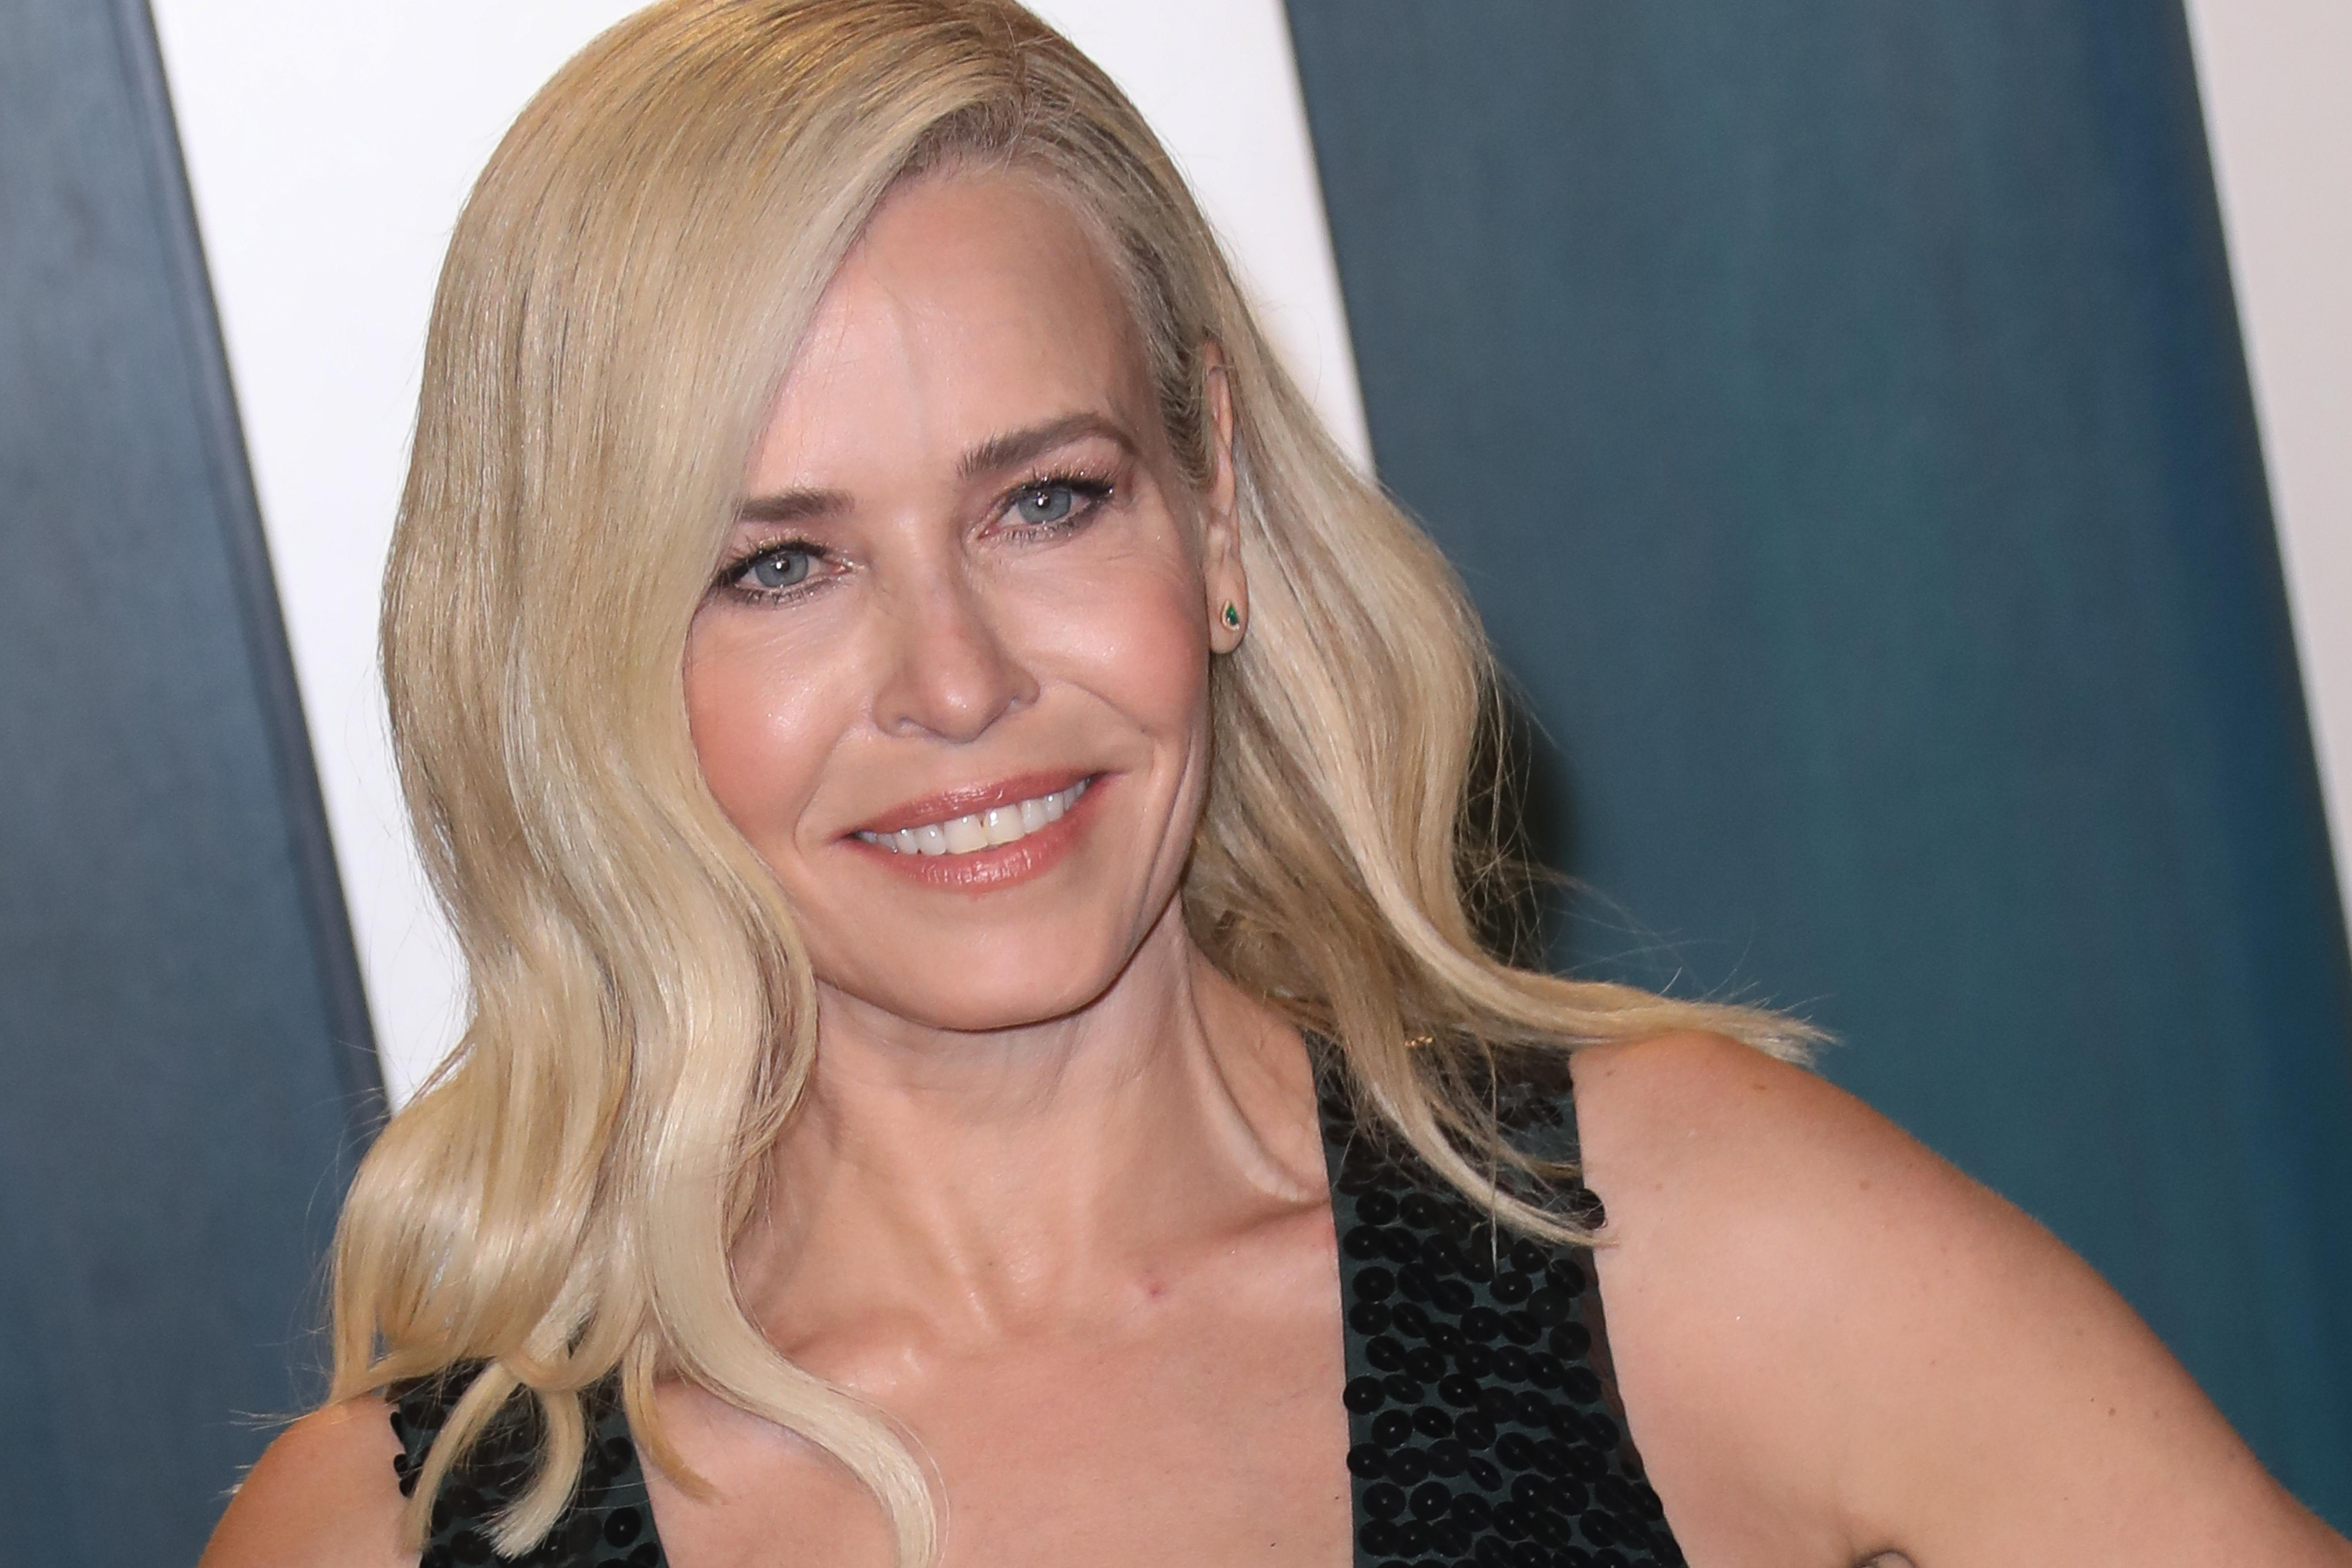 Chelsea Handler admits she was a 'self-absorbed lunatic' during late-night talk show years